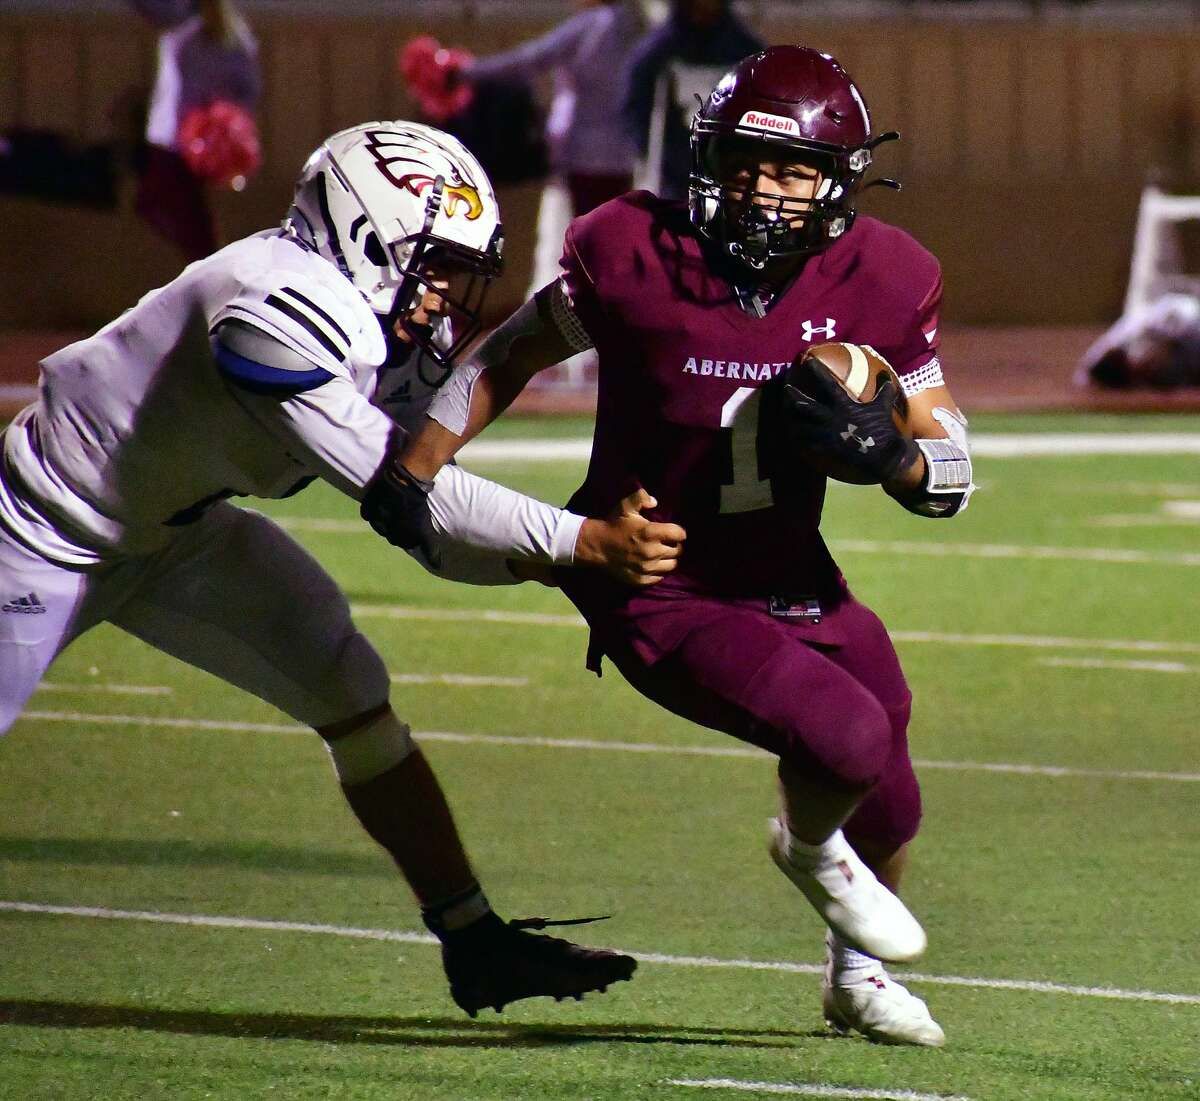 Abernathy's Malachi Reyes ducks around a Lubbock Roosevelt defender during their District 4-3A Division II football game on Oct. 23, 2020 in Abernathy.